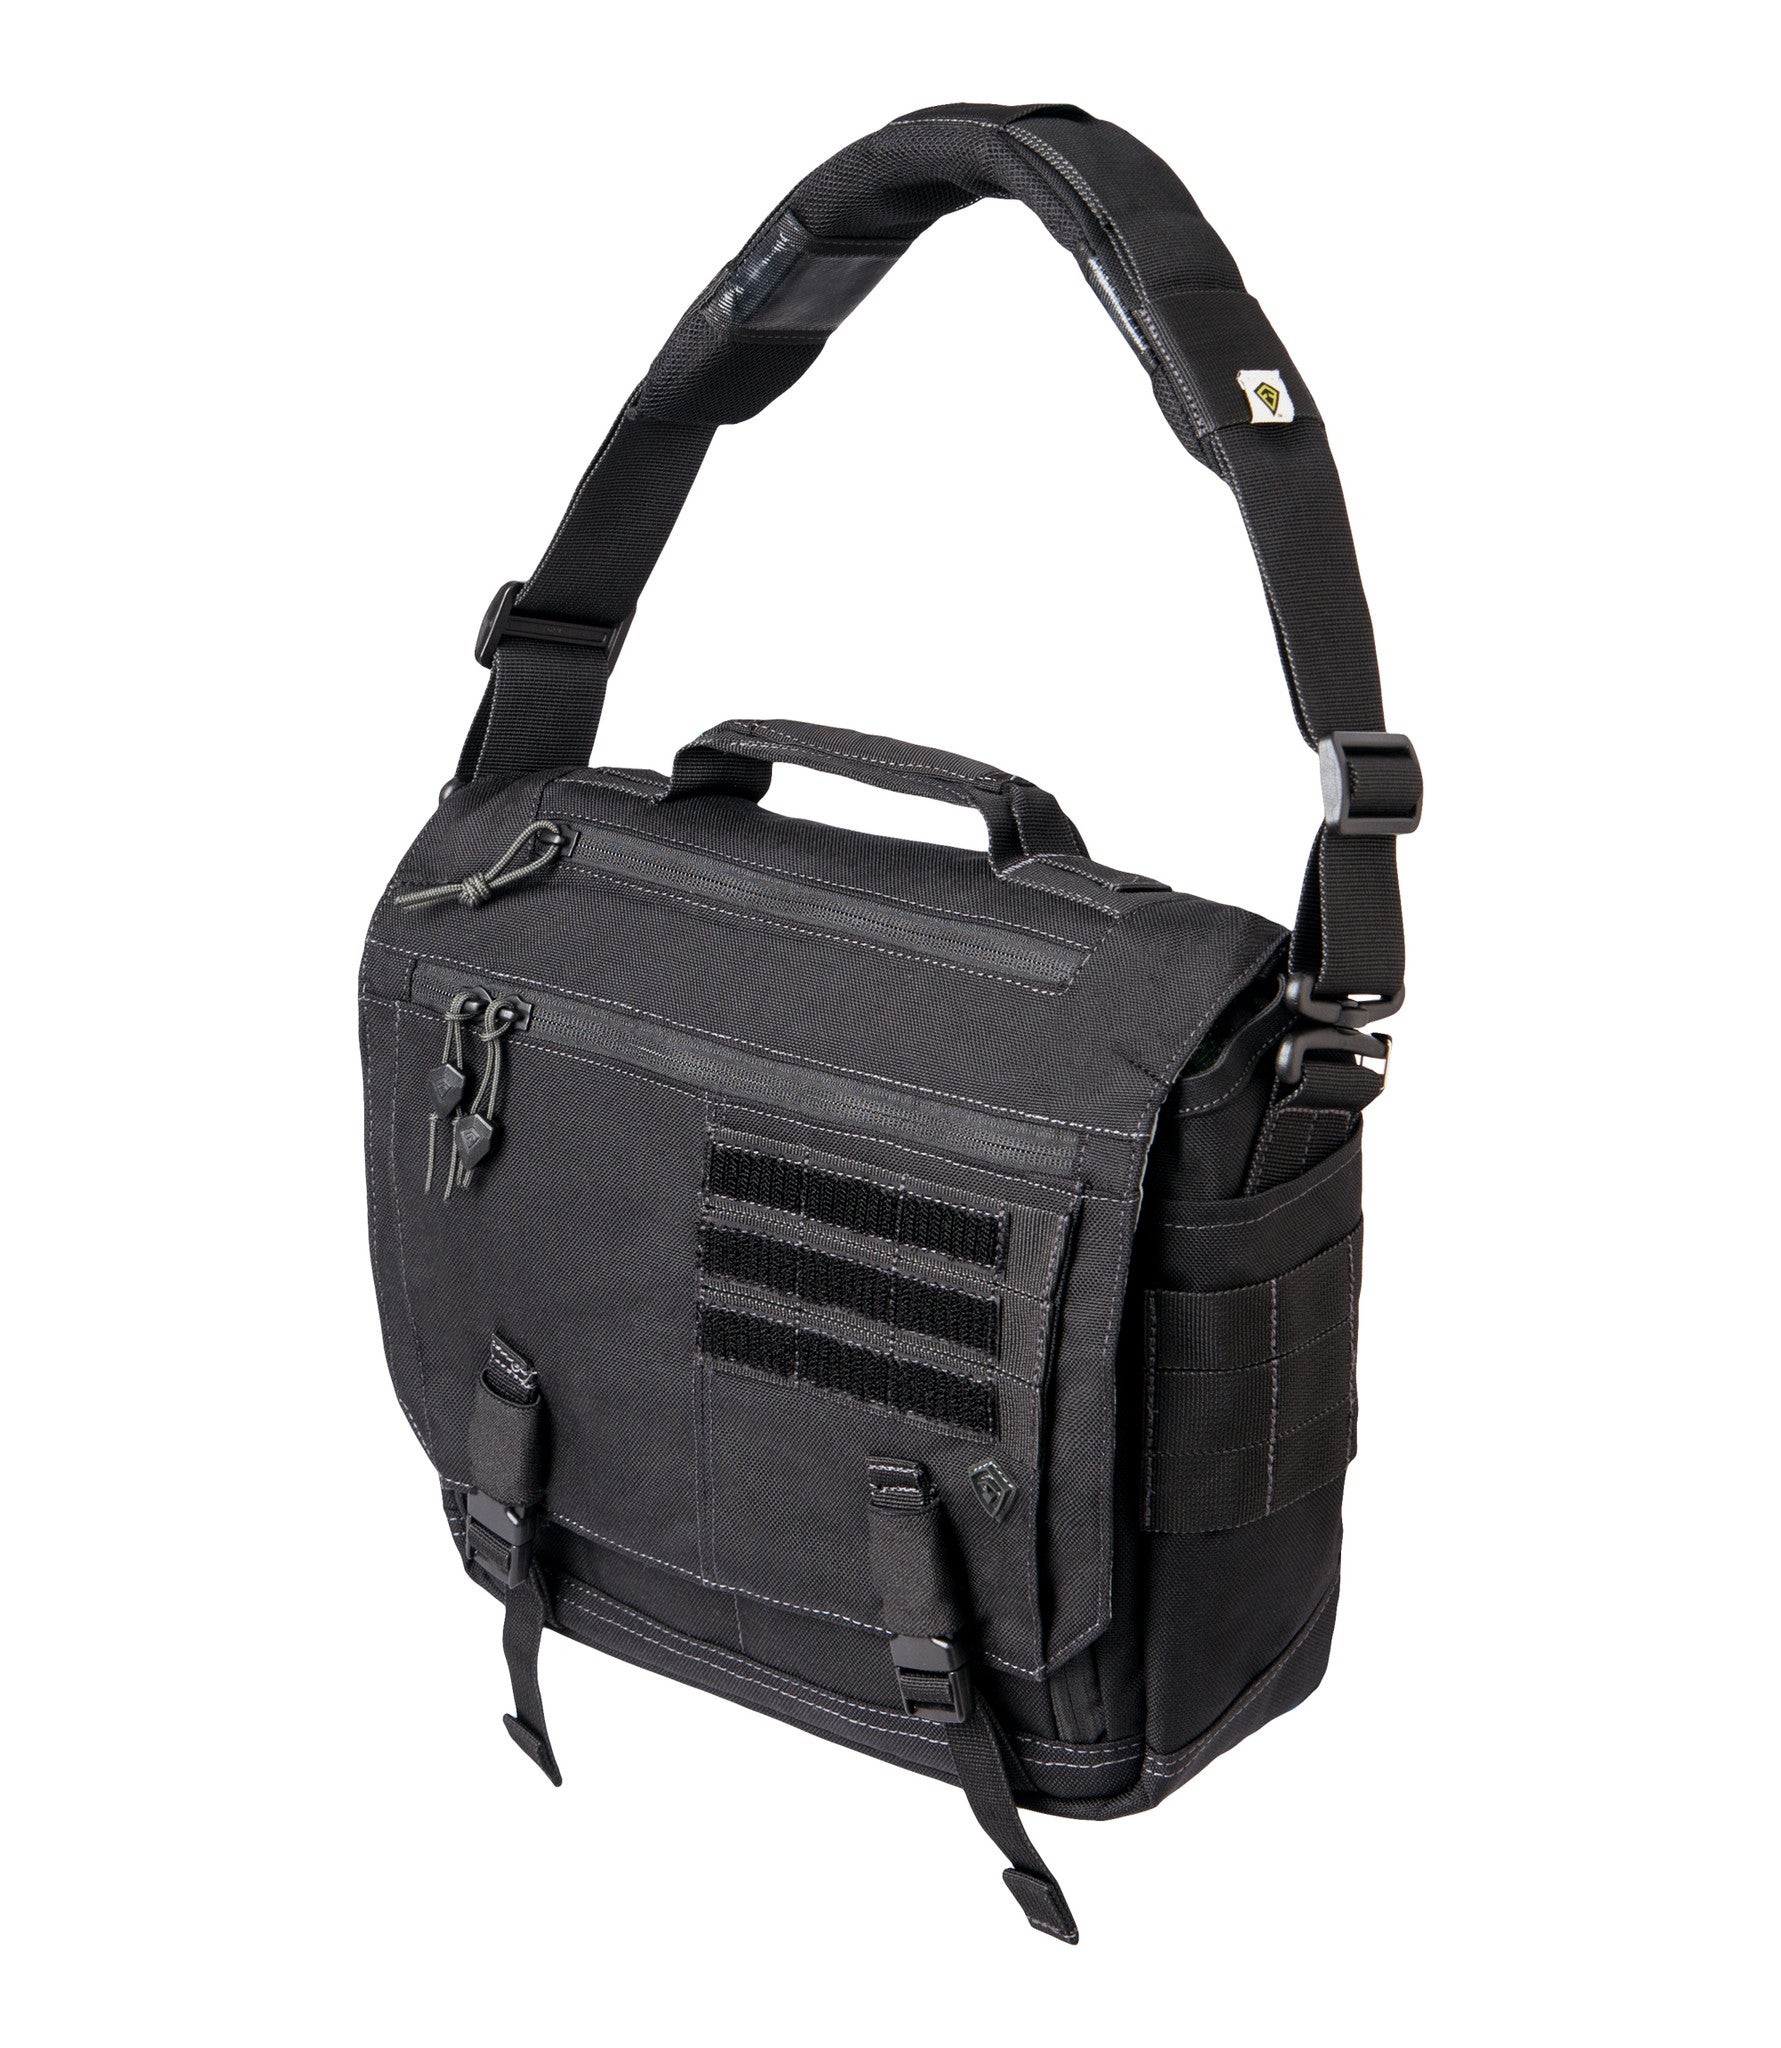 33f2218a02 Summit Side Satchel